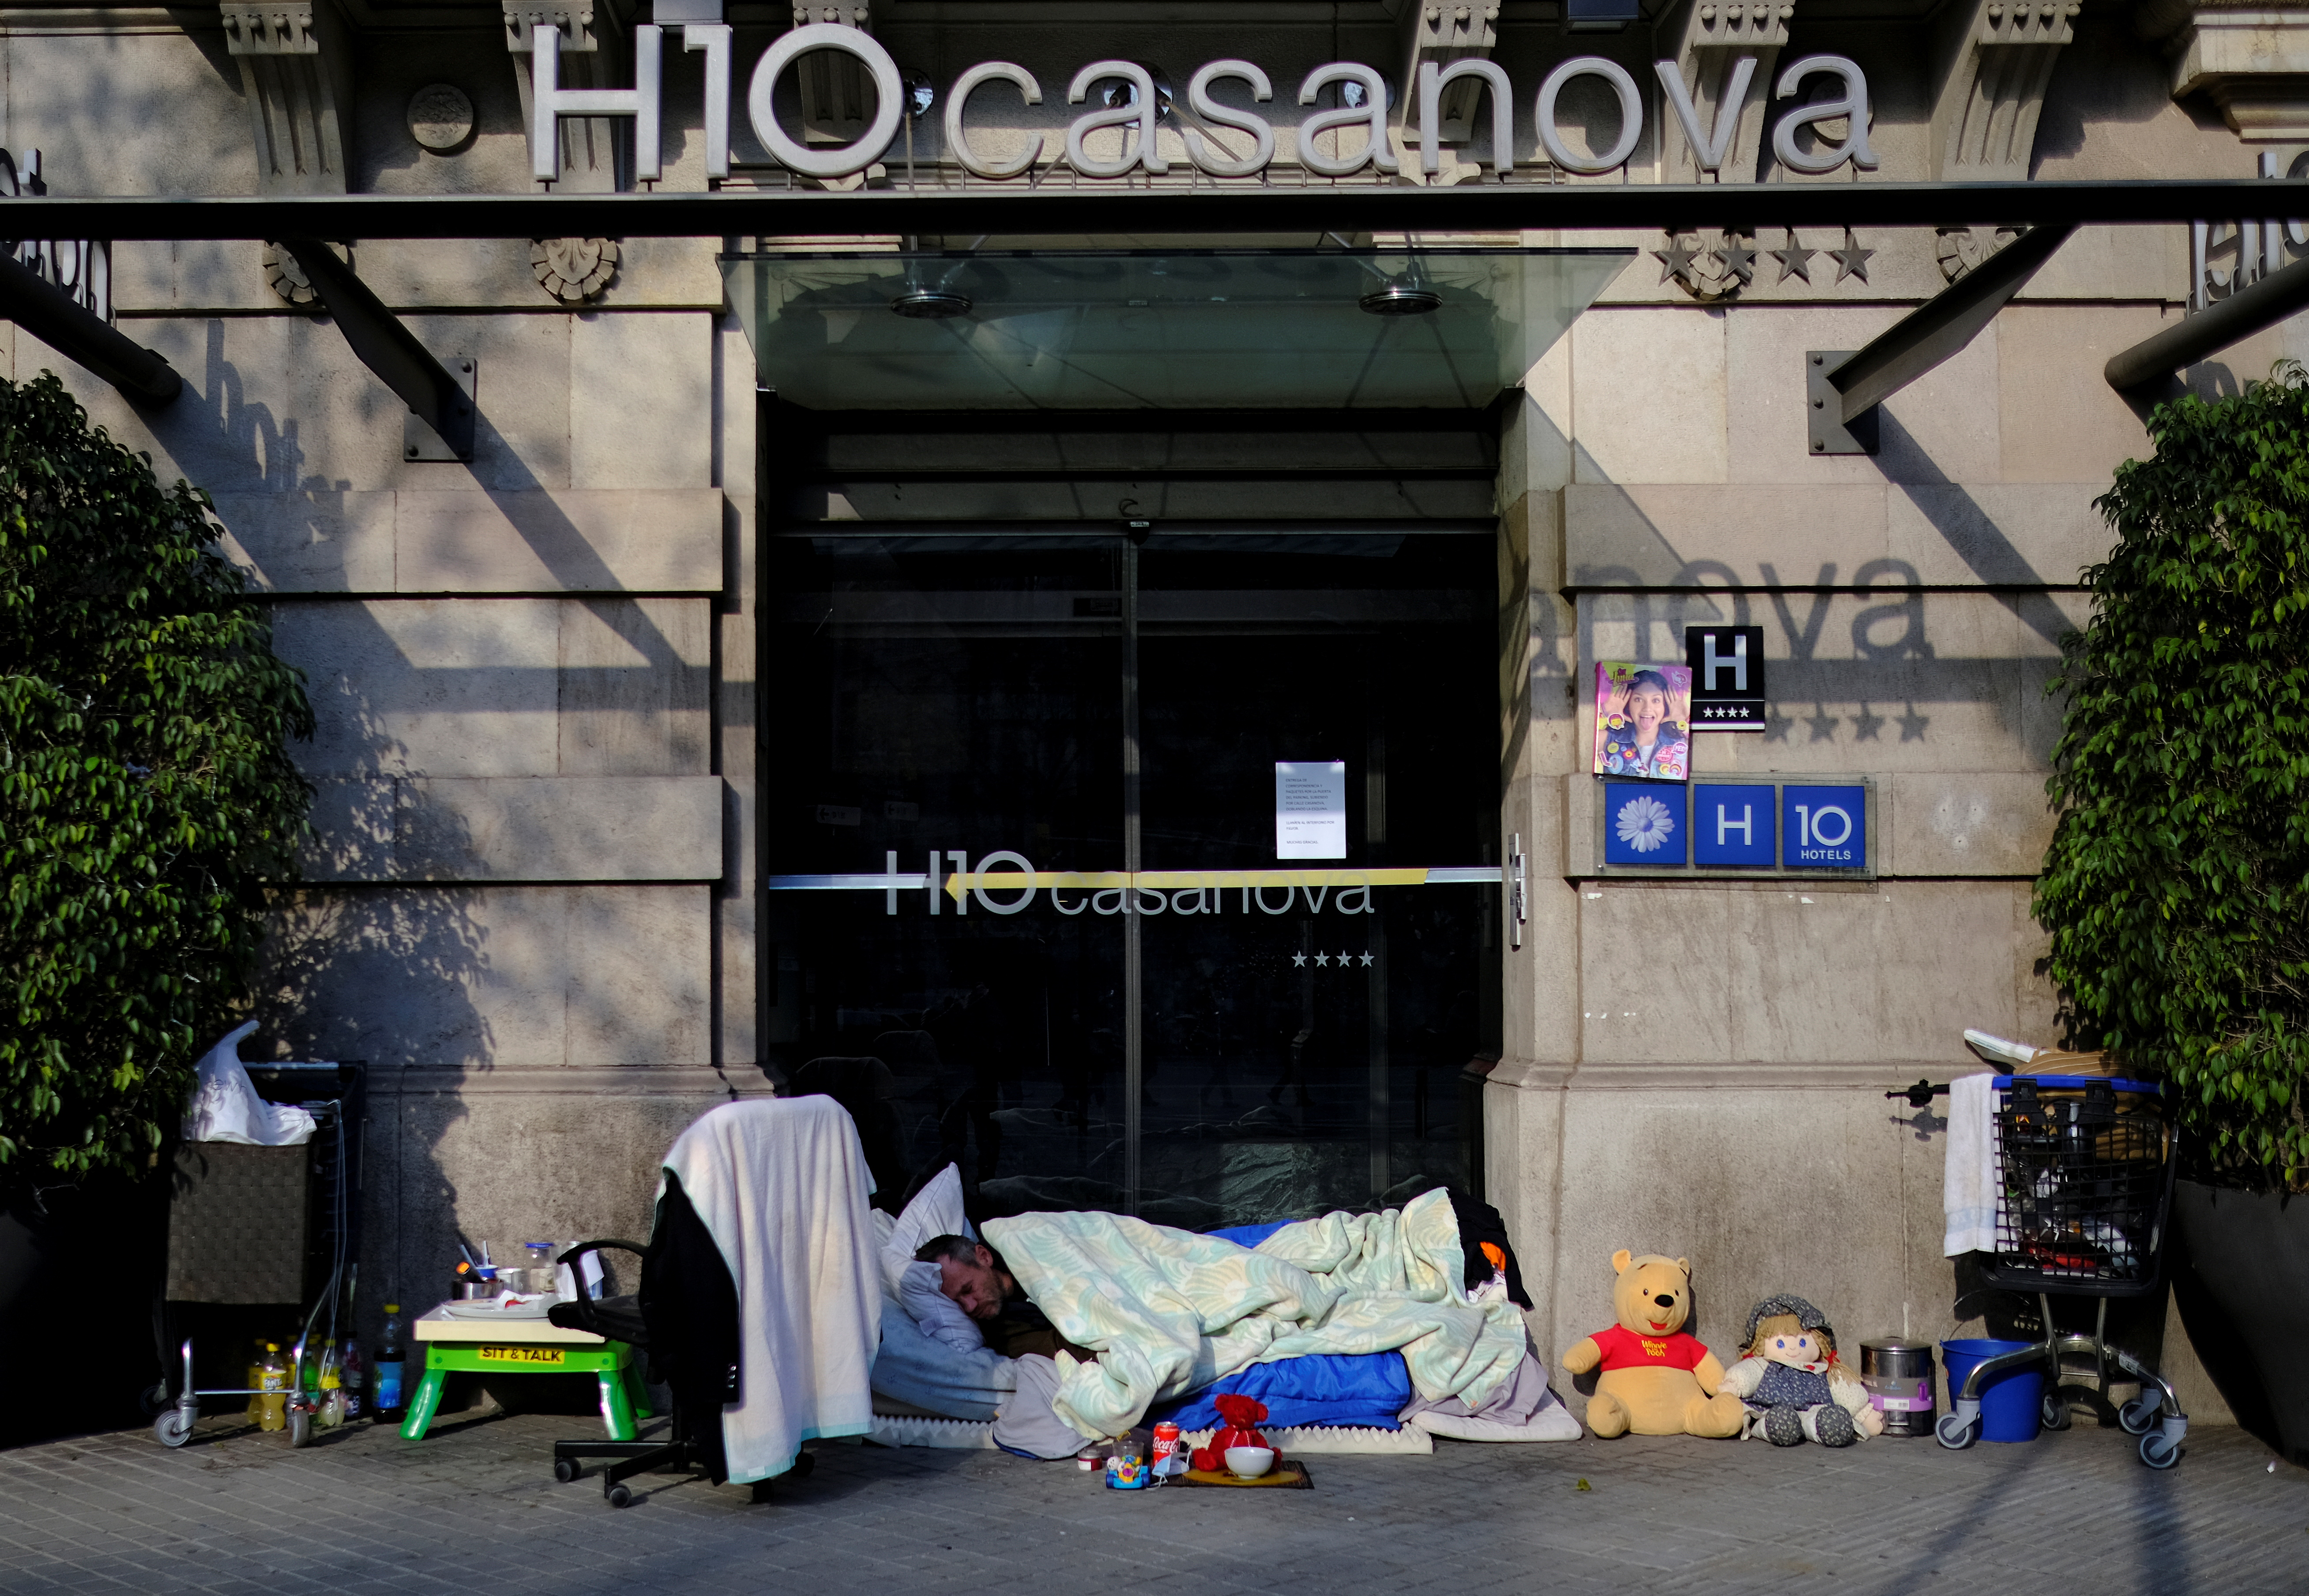 A homeless man sleeps on a mattress next to his belongings at the entrance of a closed hotel, after Catalonia's government imposed new restrictions in an effort to control the outbreak of the coronavirus disease (COVID-19) in Barcelona, Spain January 6, 2021. REUTERS/Nacho Doce